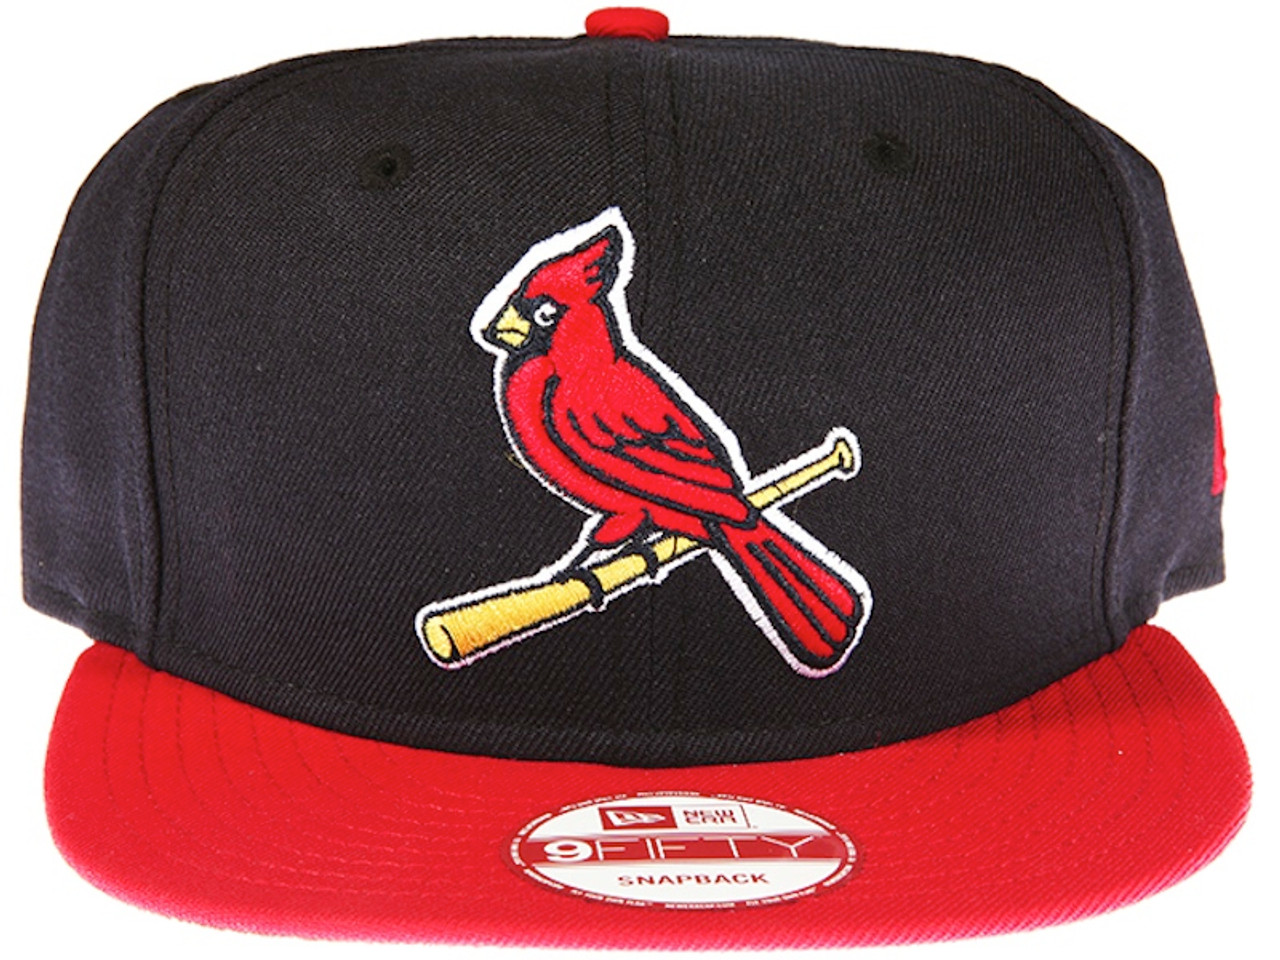 St. Louis Cardinals Alternate Logo New Era 9FIFTY MLB Blue and Red Snapback  Hat 883857c5f2e